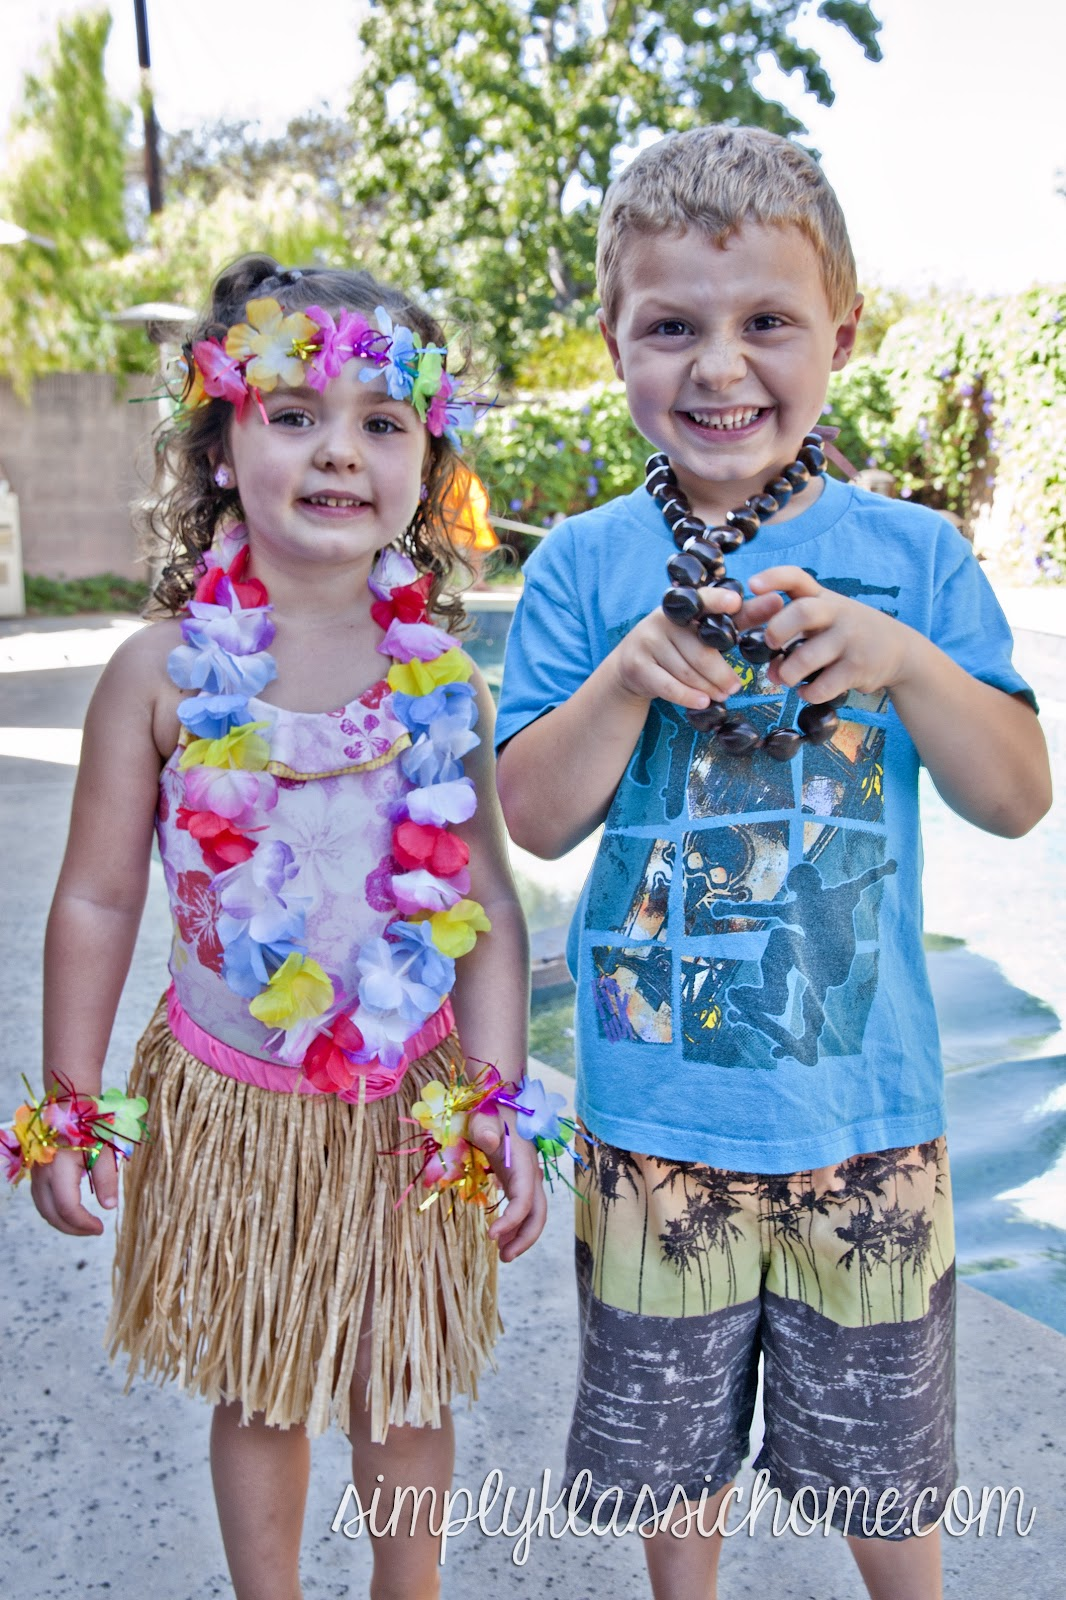 Magnificent Tiki Room Luau Birthday Party Yellow Bliss Road Short Hairstyles For Black Women Fulllsitofus